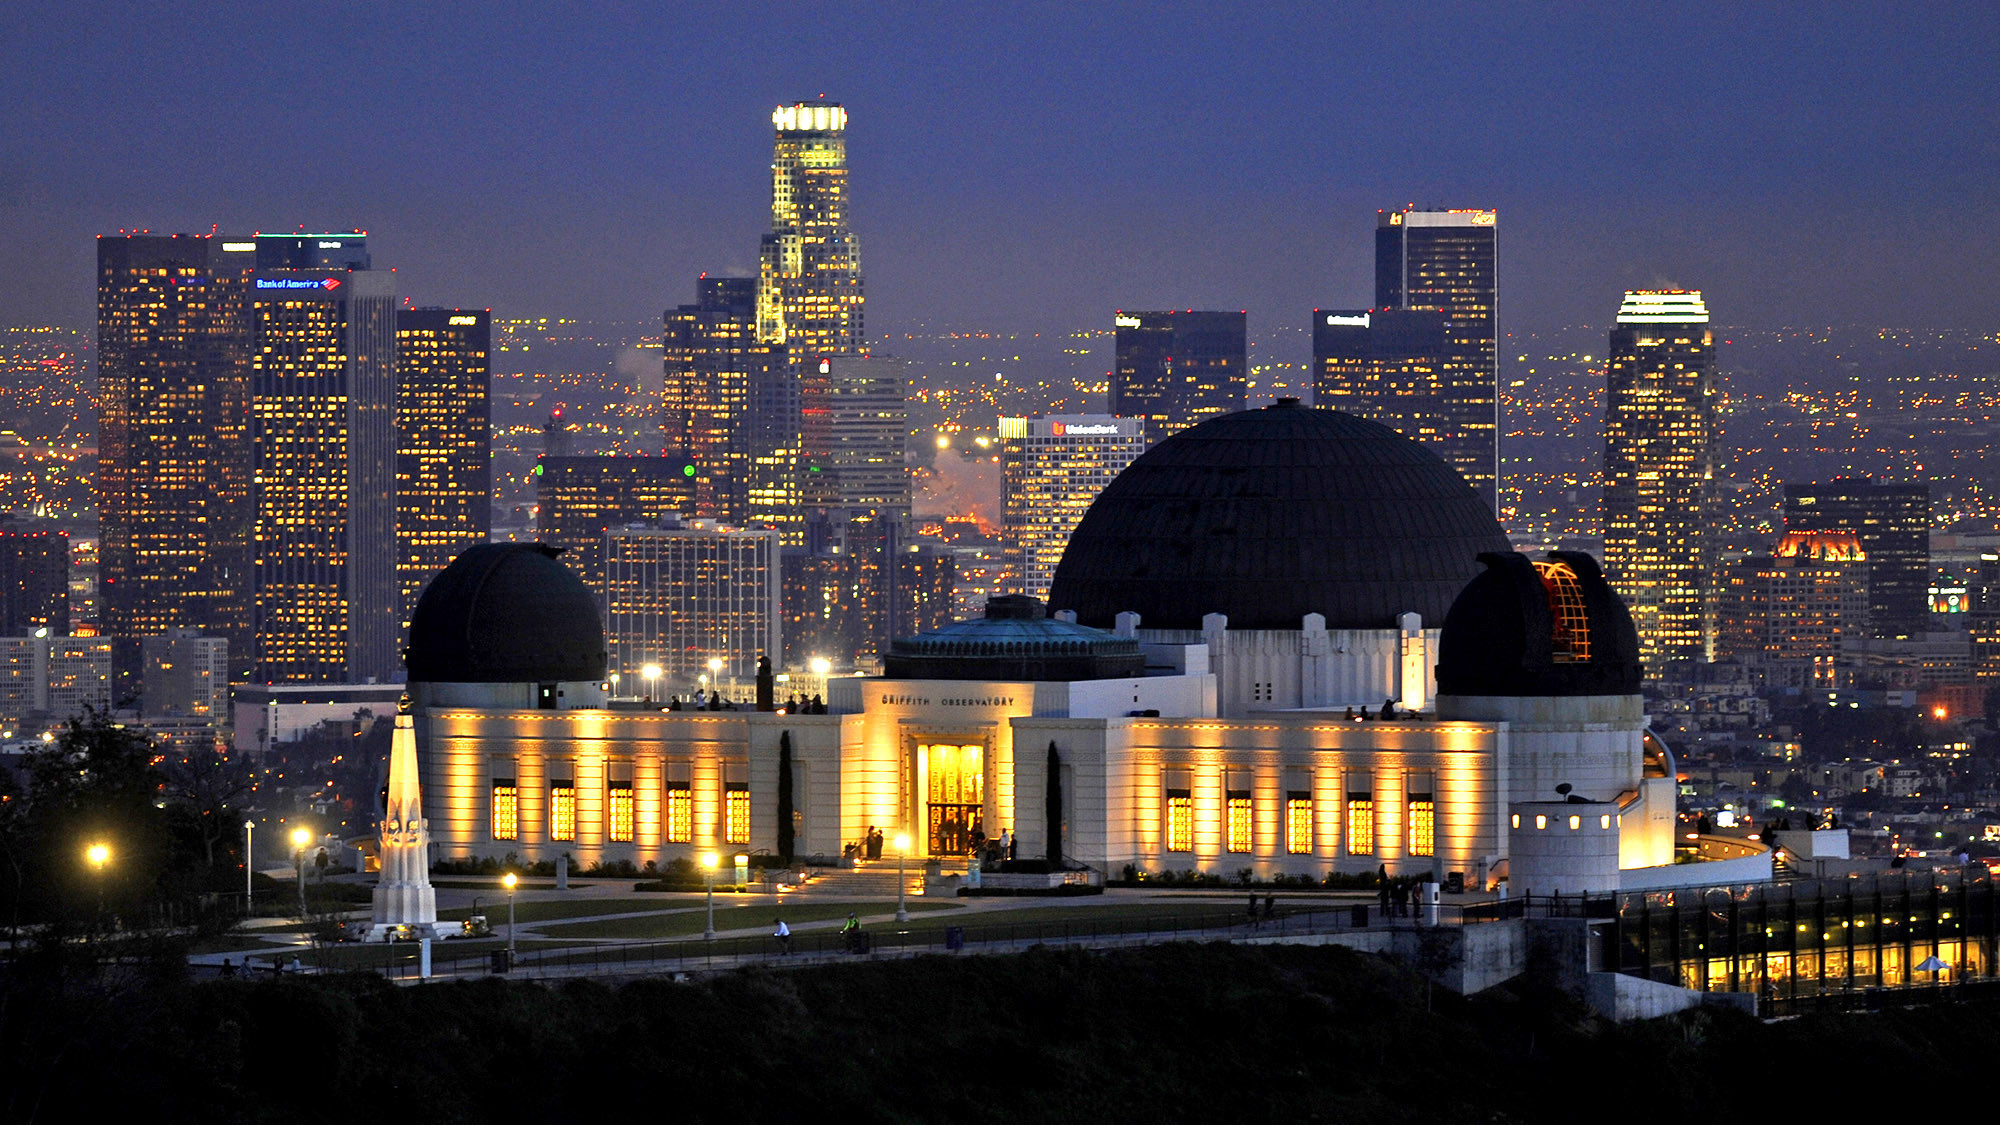 griffith park tops list of most popular laarea filming